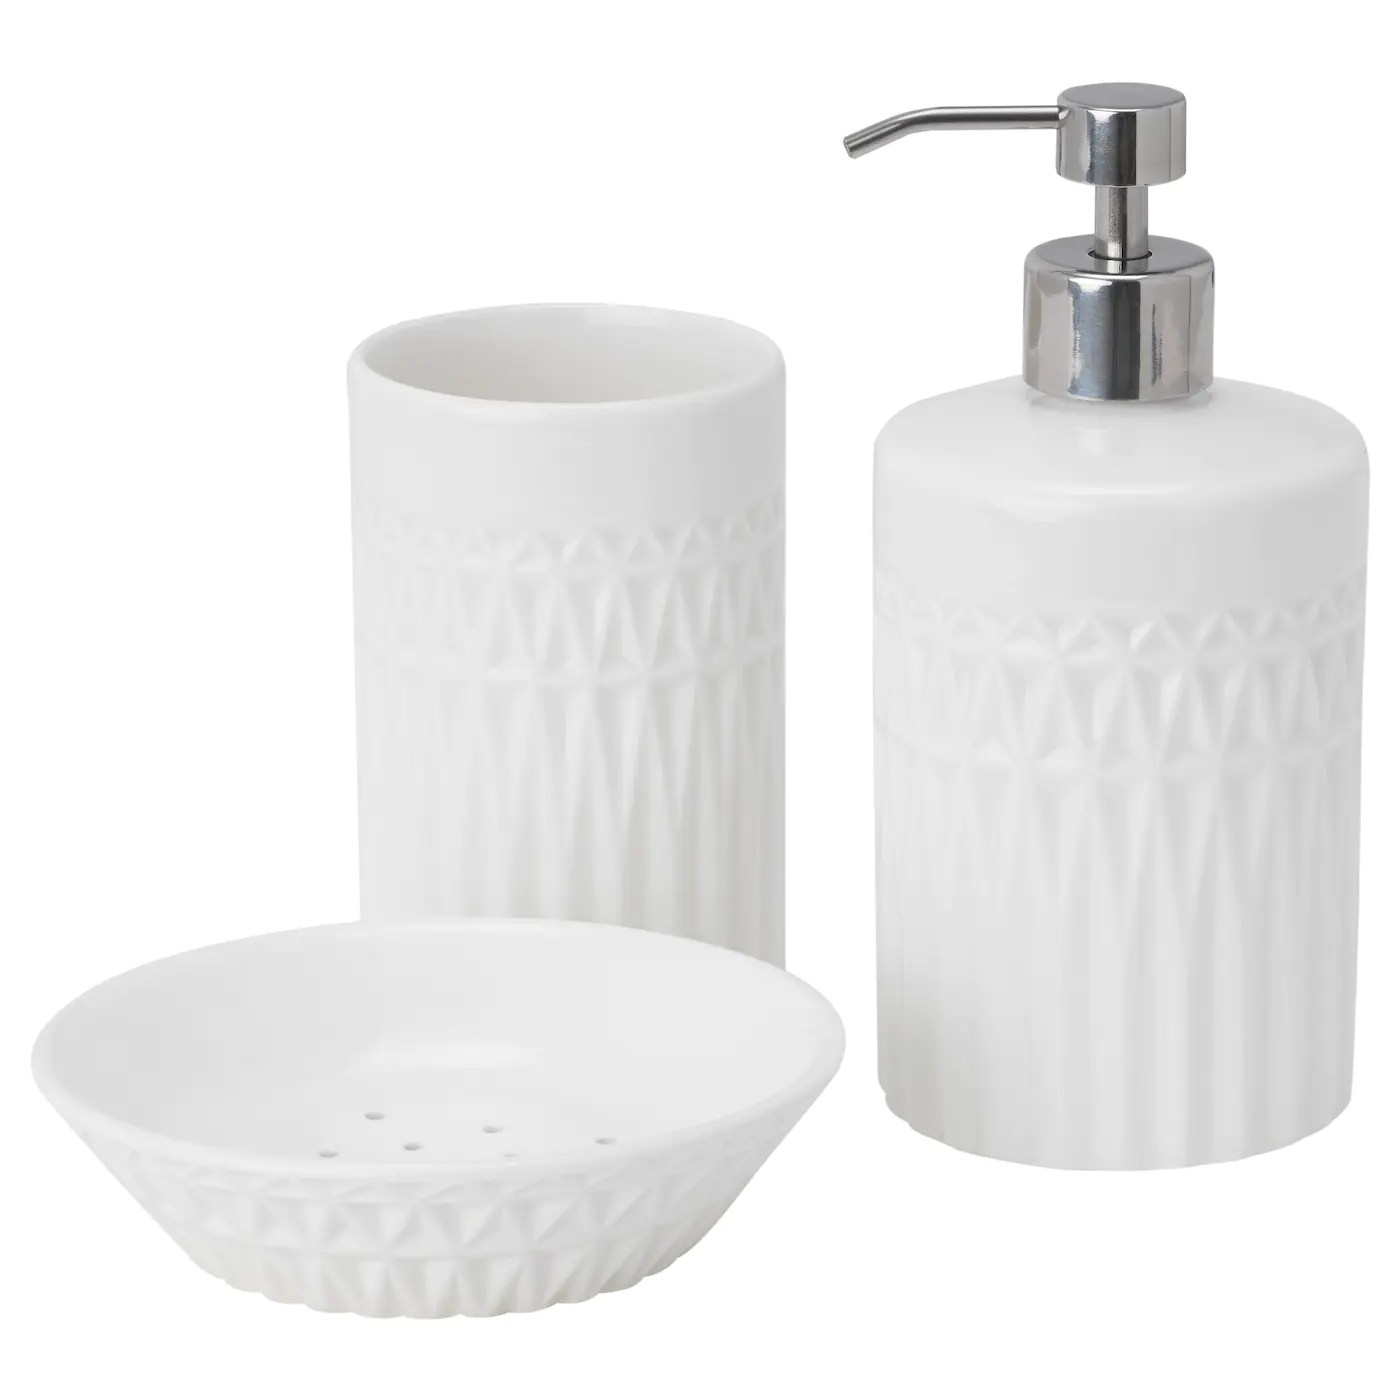 Seifenspender Küche Ikea Ikea Voxnan Stylish Ceramic Soap Dish Bathroom Toilet Kitchen Brand New Uk-b786